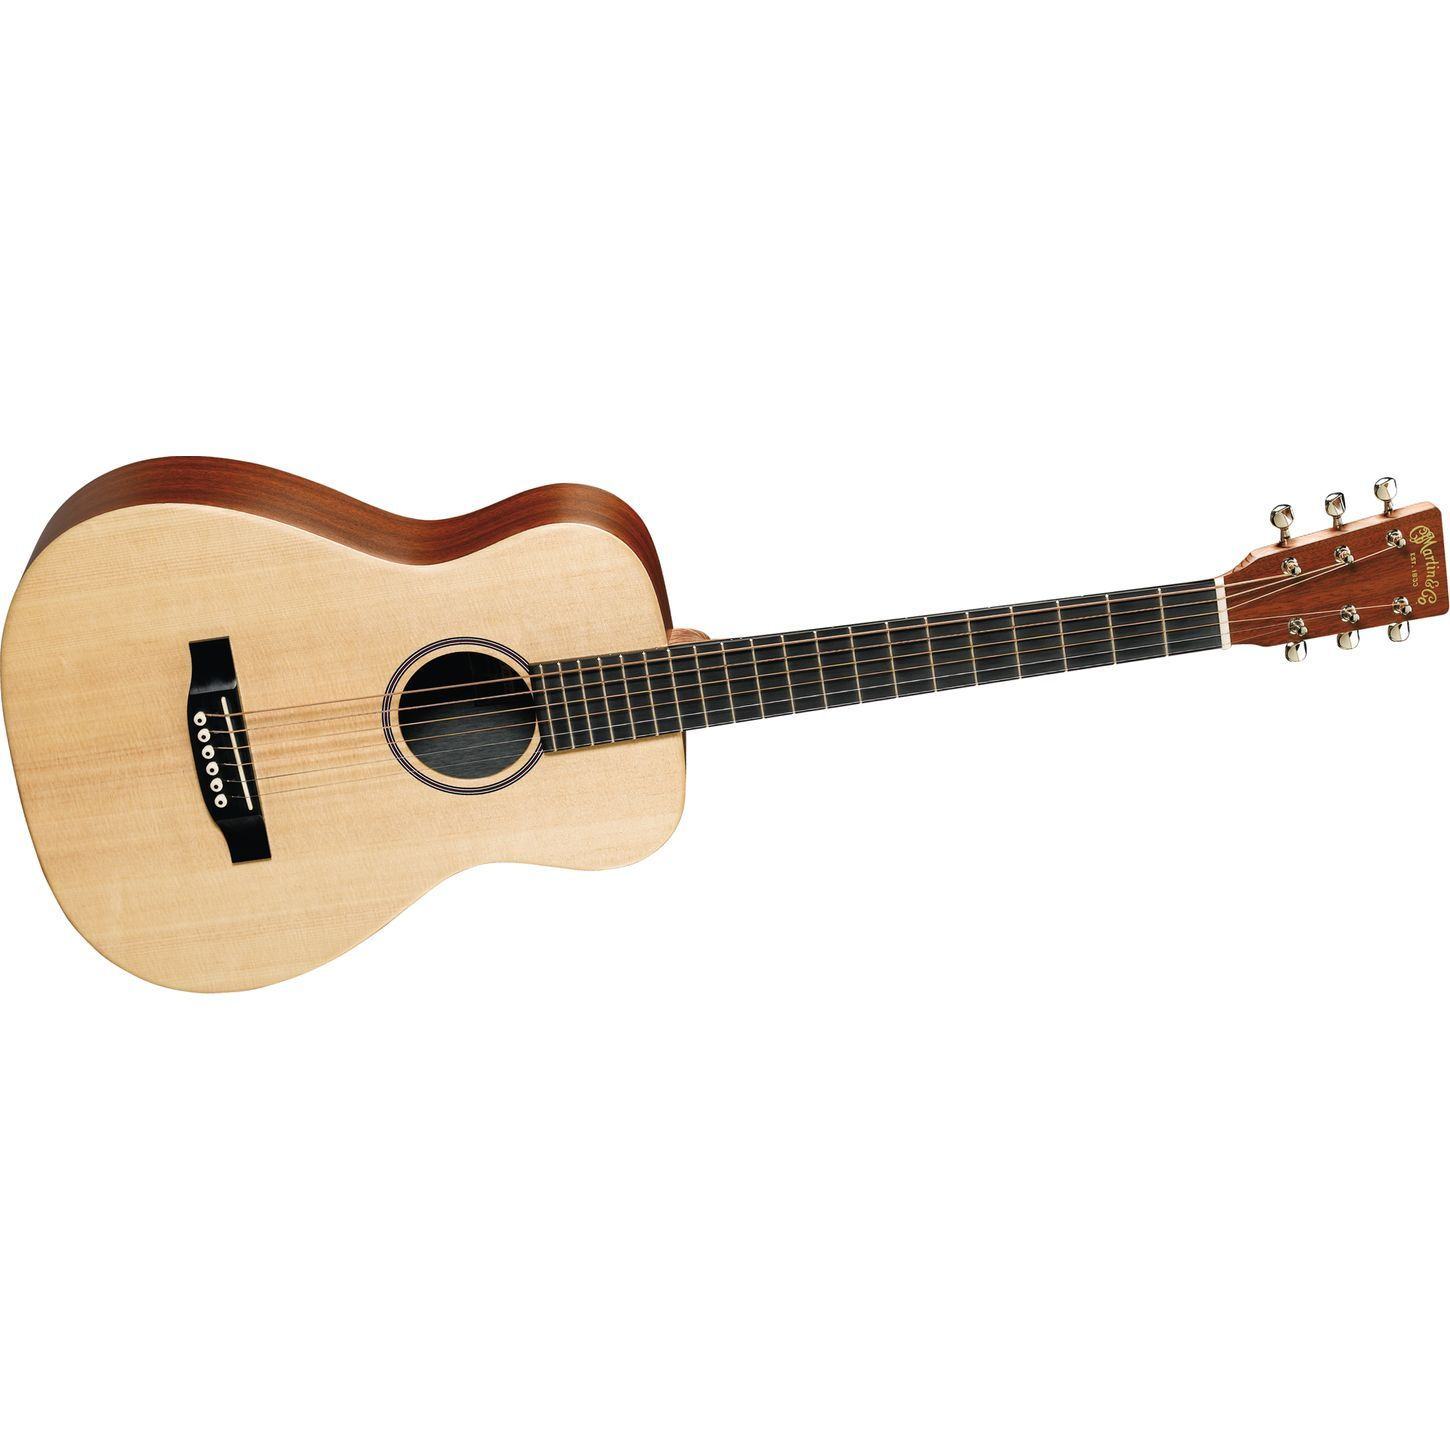 Martin LX1 Little Martin Acoustic Guitar I can t wait to